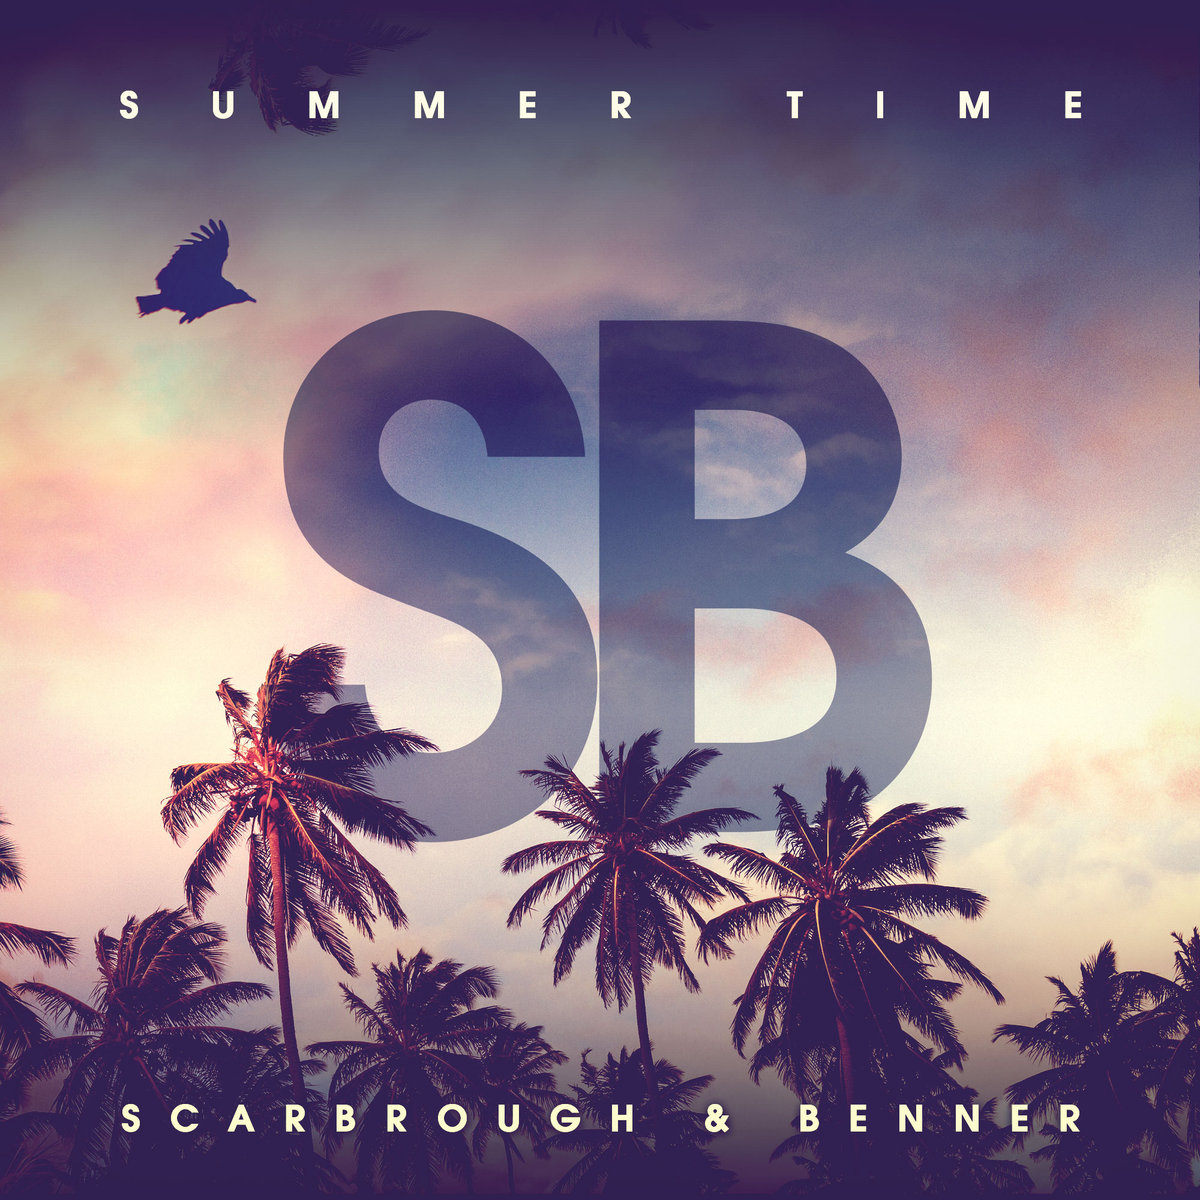 Scarbrough & Benner - Hold On @ 'Summertime' album (little dragon, thievery corporation)